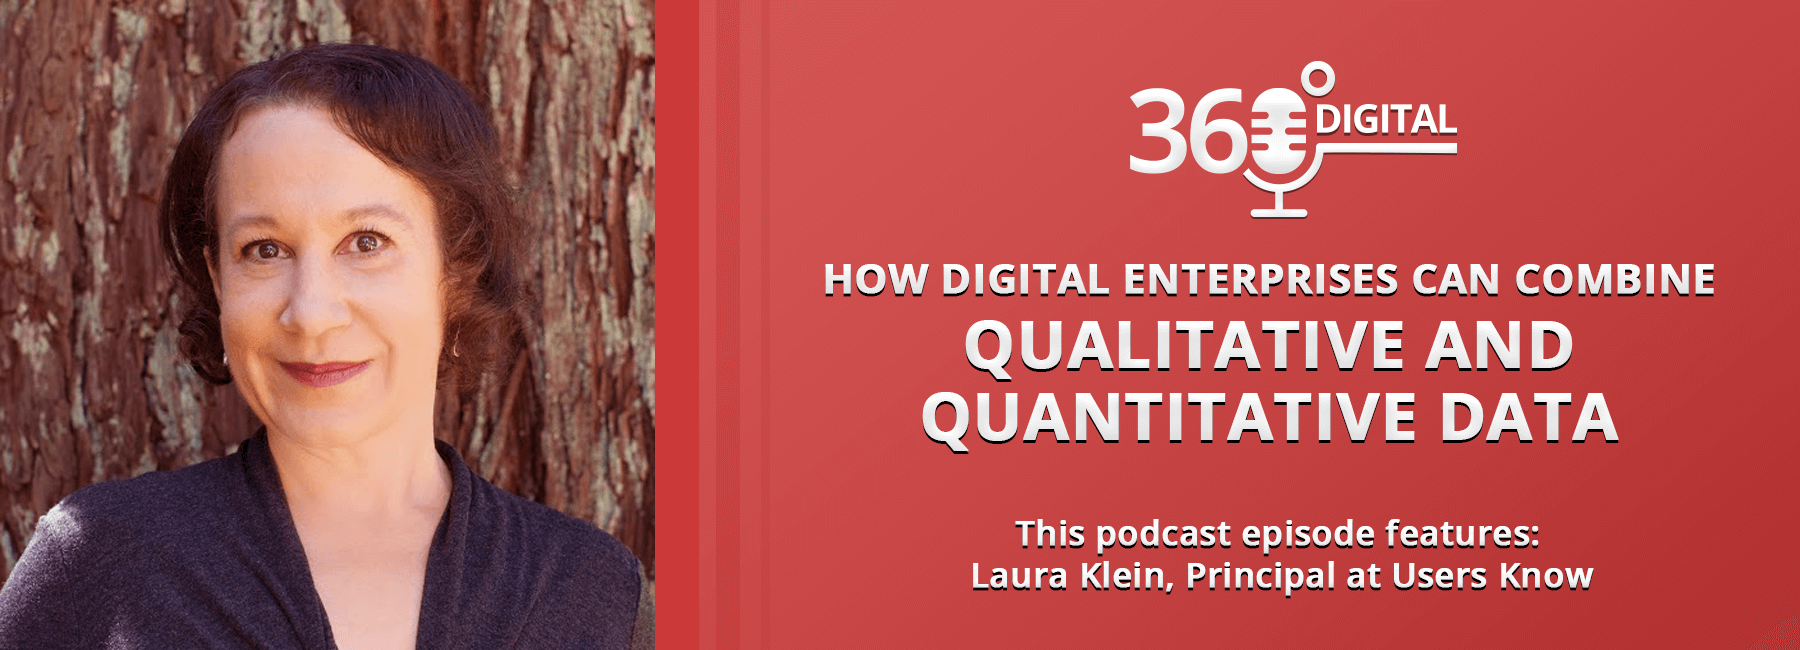 New episode with Laura Klein on 360 Digital